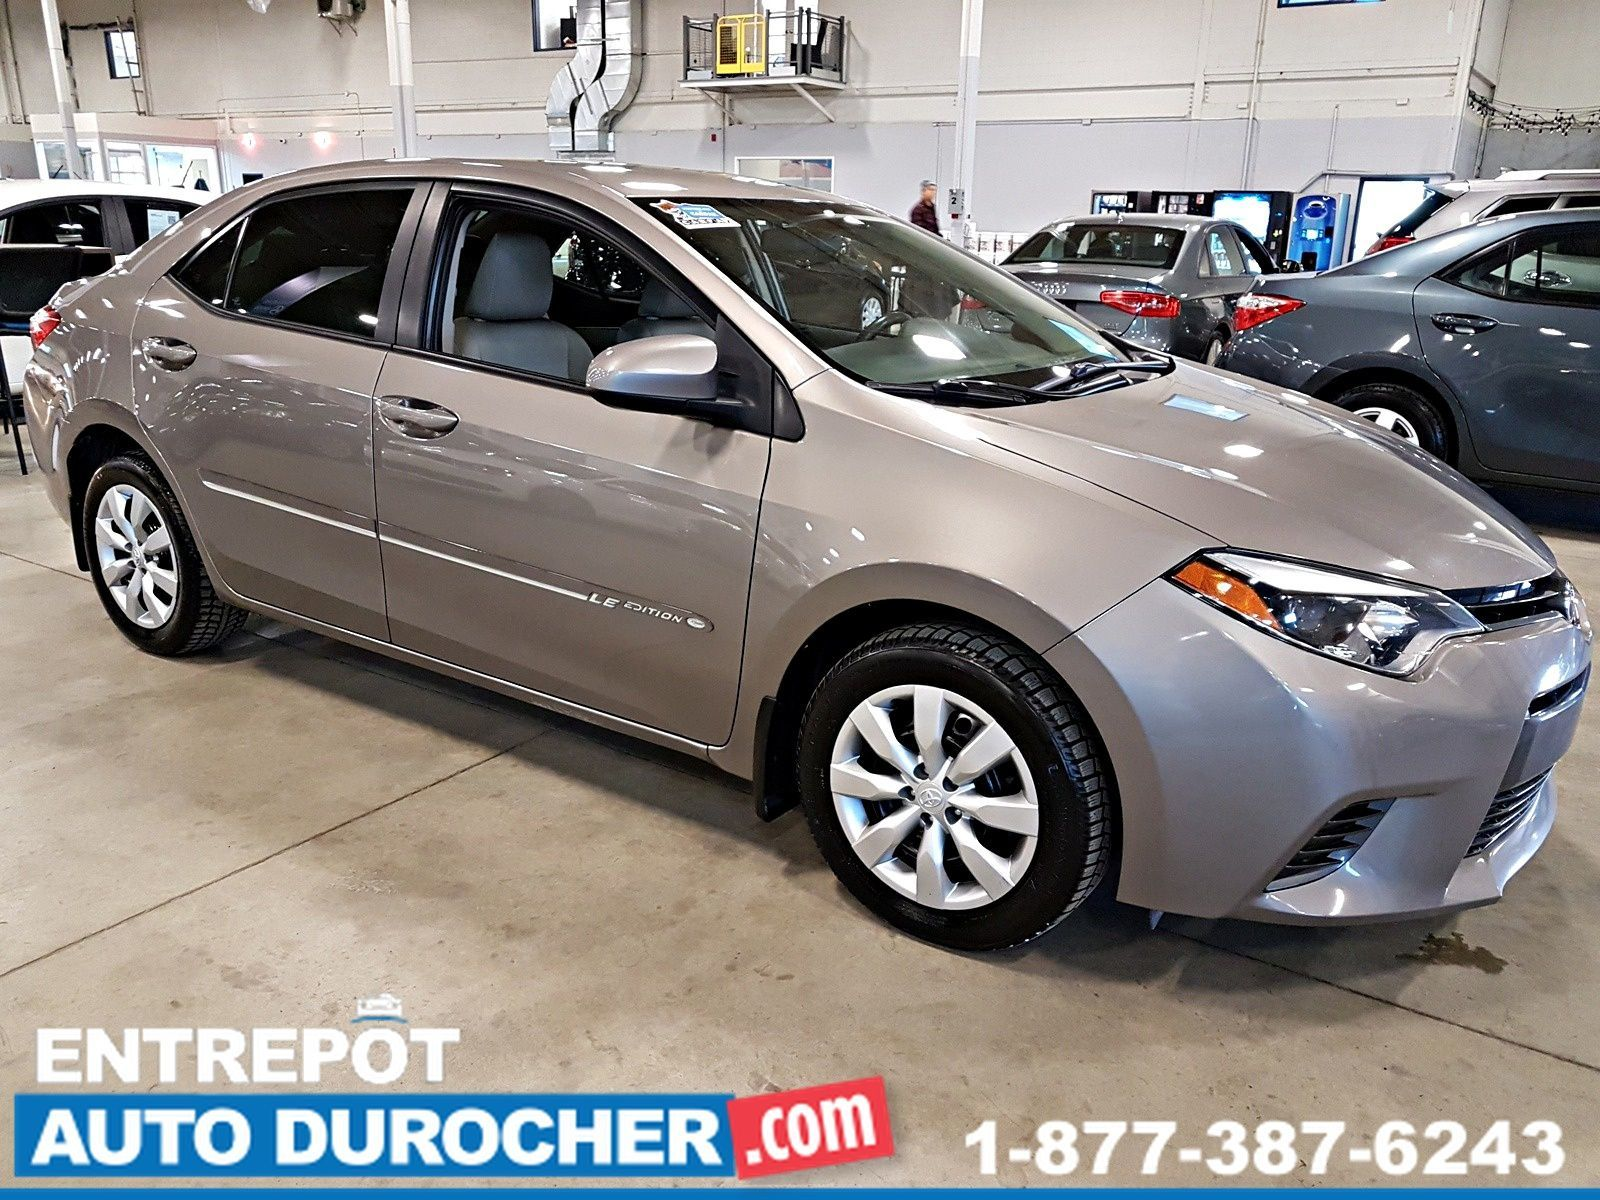 Used toyota Corolla for Sale Inspirational Auto Durocher Used toyota Corolla 2016 for Sale In Laval